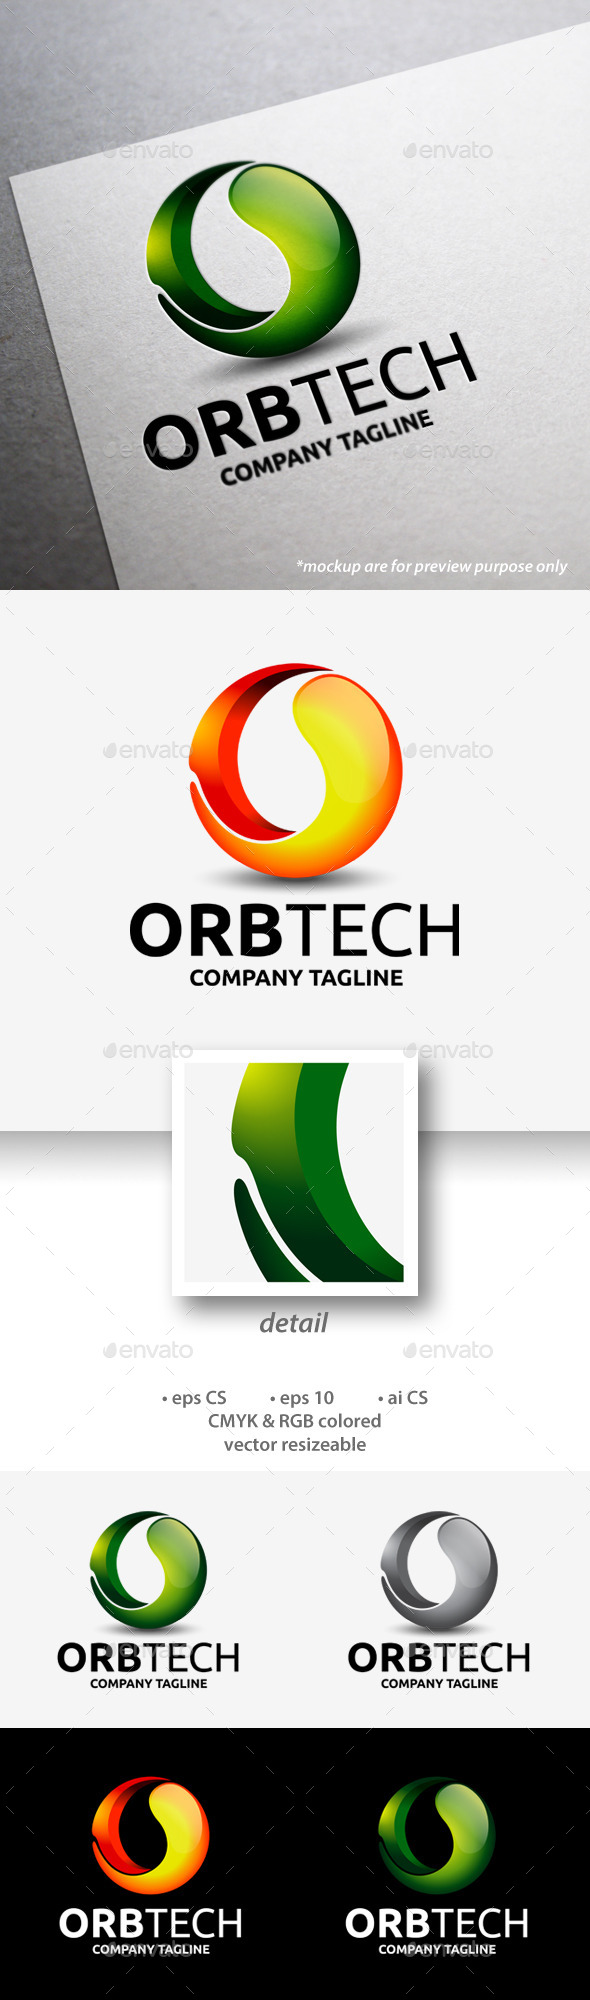 Orbtech Logo - Abstract Logo Templates